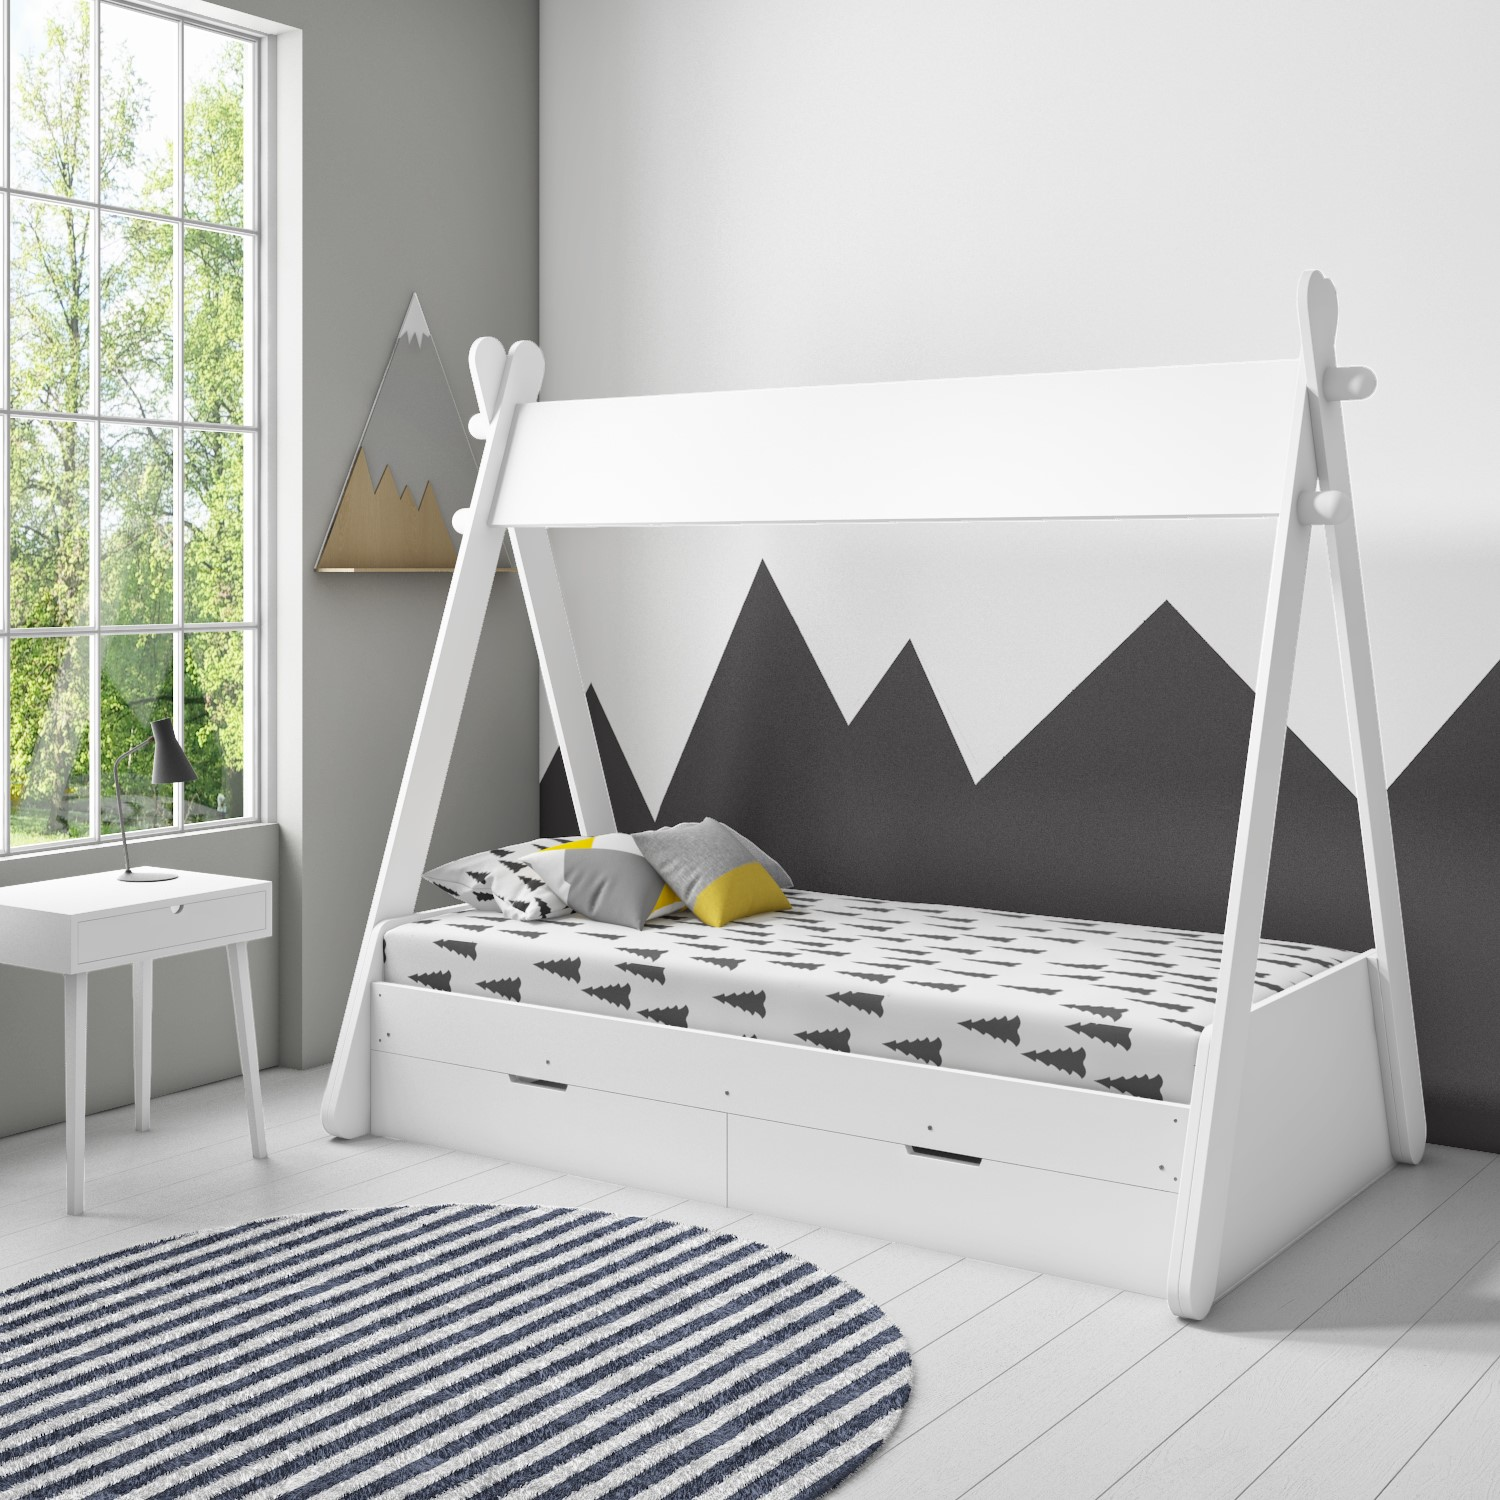 arlo white teepee bed frame with pull out storage drawers